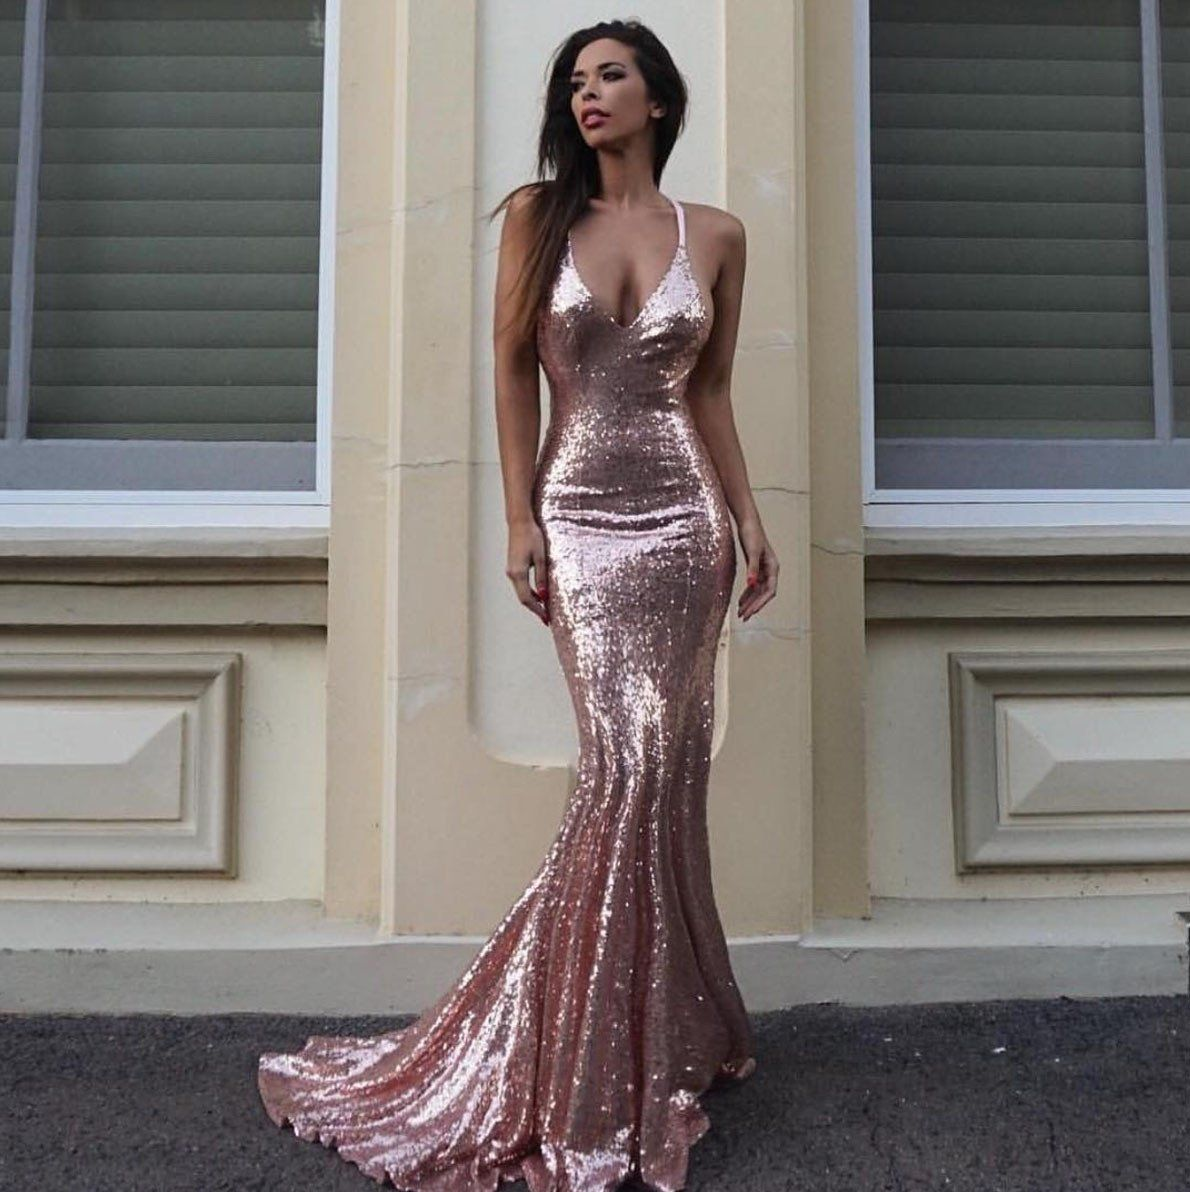 b66960d5 ... Shiralee Coleman wearing Estelle Sequin Gown in Rose Gold by Noodz  Boutique ...